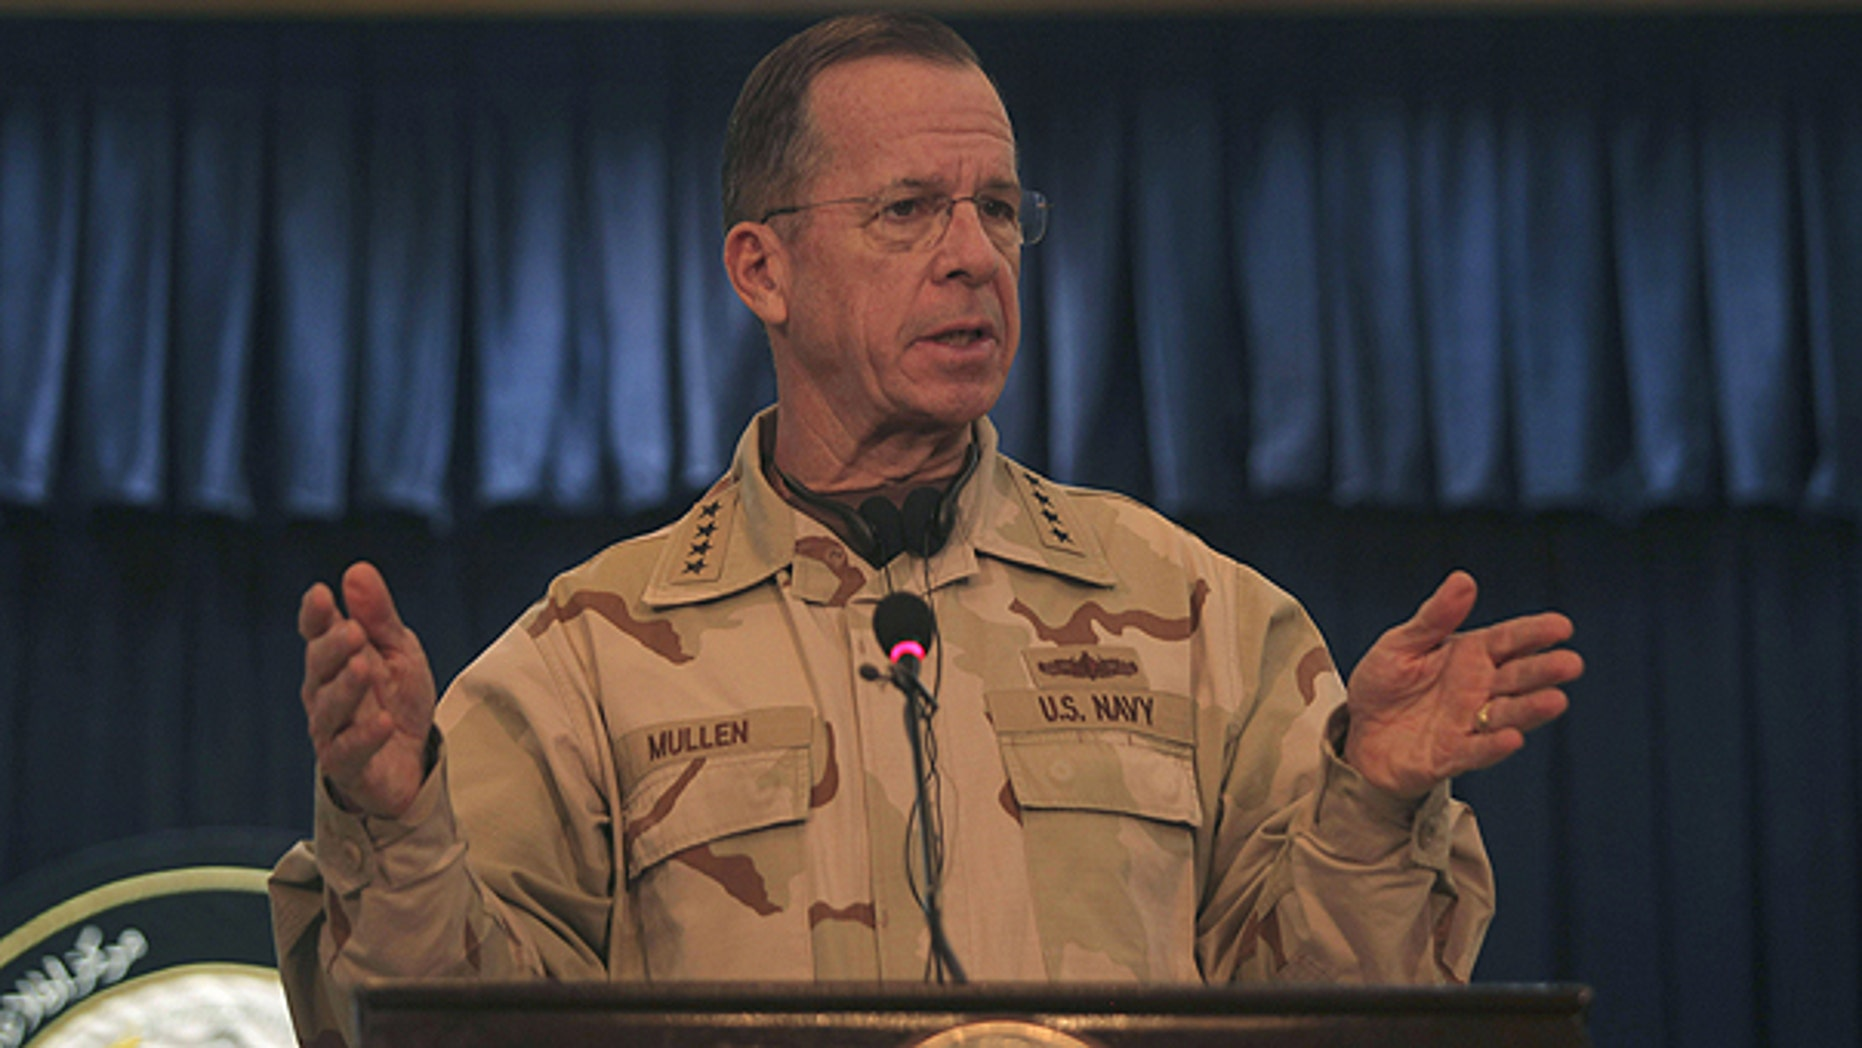 Dec. 17: Adm. Mike Mullen of the U.S., chairman of the Joint Chiefs of Staff, during a press conference with U.S. ambassador to Afghanistan, Karl Eikenberry, not in photo, in Kabul, Afghanistan.